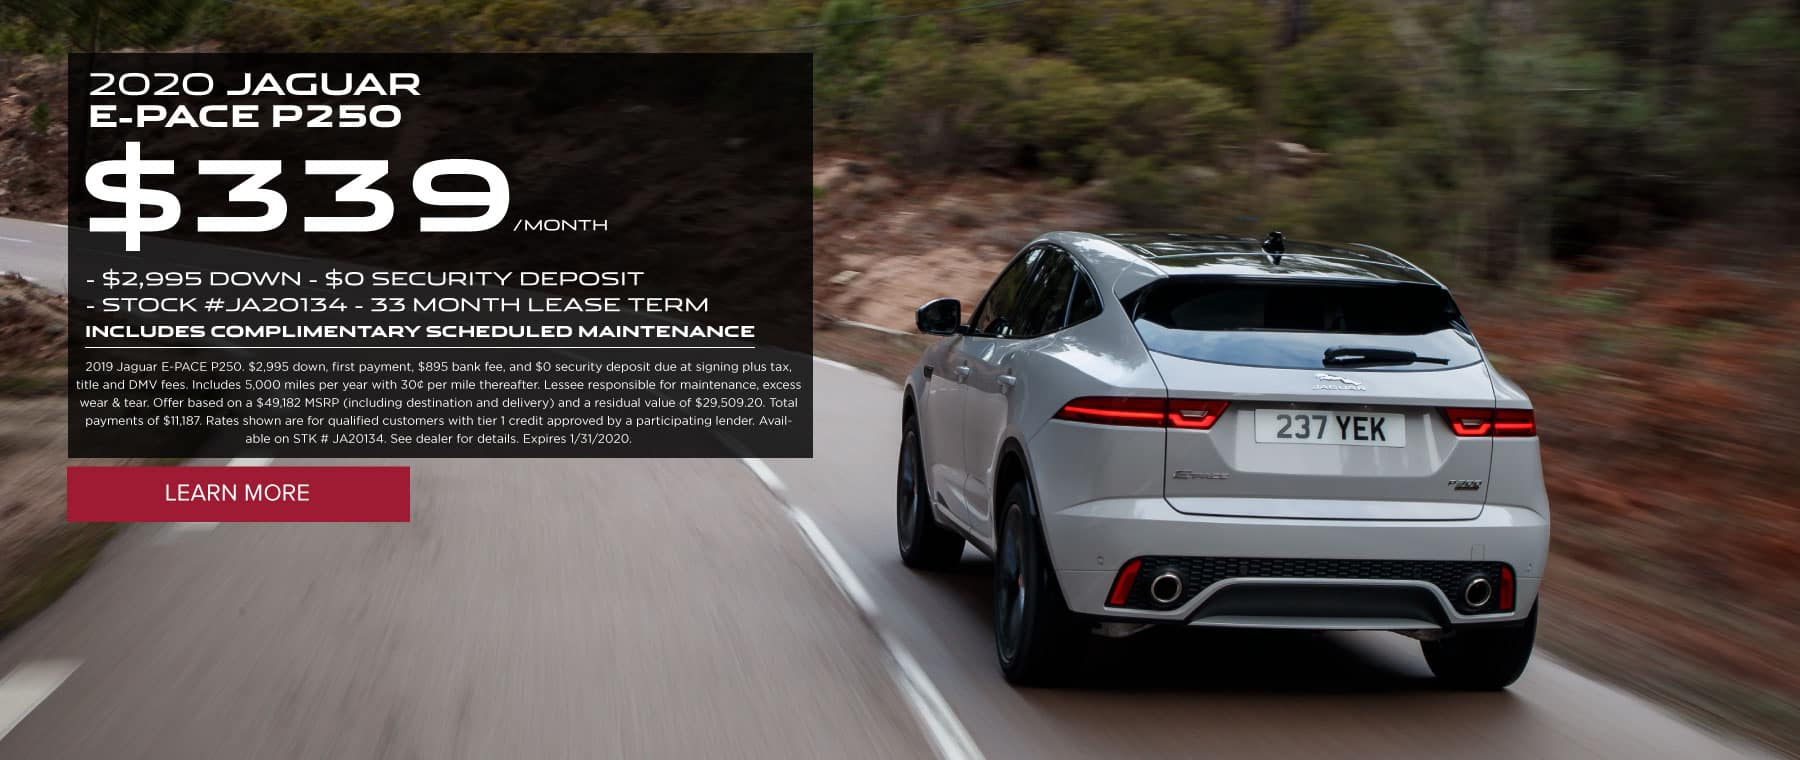 2020 JAGUAR  E-PACE P250 $339 /MONTH $2,995 DOWN $0 SECURITY DEPOSIT STOCK #JA20134 - 33 MONTH LEASE TERM INCLUDES COMPLIMENTARY SCHEDULED MAINTENANCE 2019 Jaguar E-PACE P250. $2,995 down, first payment, $895 bank fee, and $0 security deposit due at signing plus tax, title and DMV fees. Includes 5,000 miles per year with 30¢ per mile thereafter. Lessee responsible for maintenance, excess wear & tear. Offer based on a $49,182 MSRP (including destination and delivery) and a residual value of $29,509.20. Total payments of $11,187. Rates shown are for qualified customers with tier 1 credit approved by a participating lender. Available on STK # JA20134. See dealer for details. Expires 1/31/2020. Click to learn more. Rear of Grey E-PACE on road with trees surrounding.